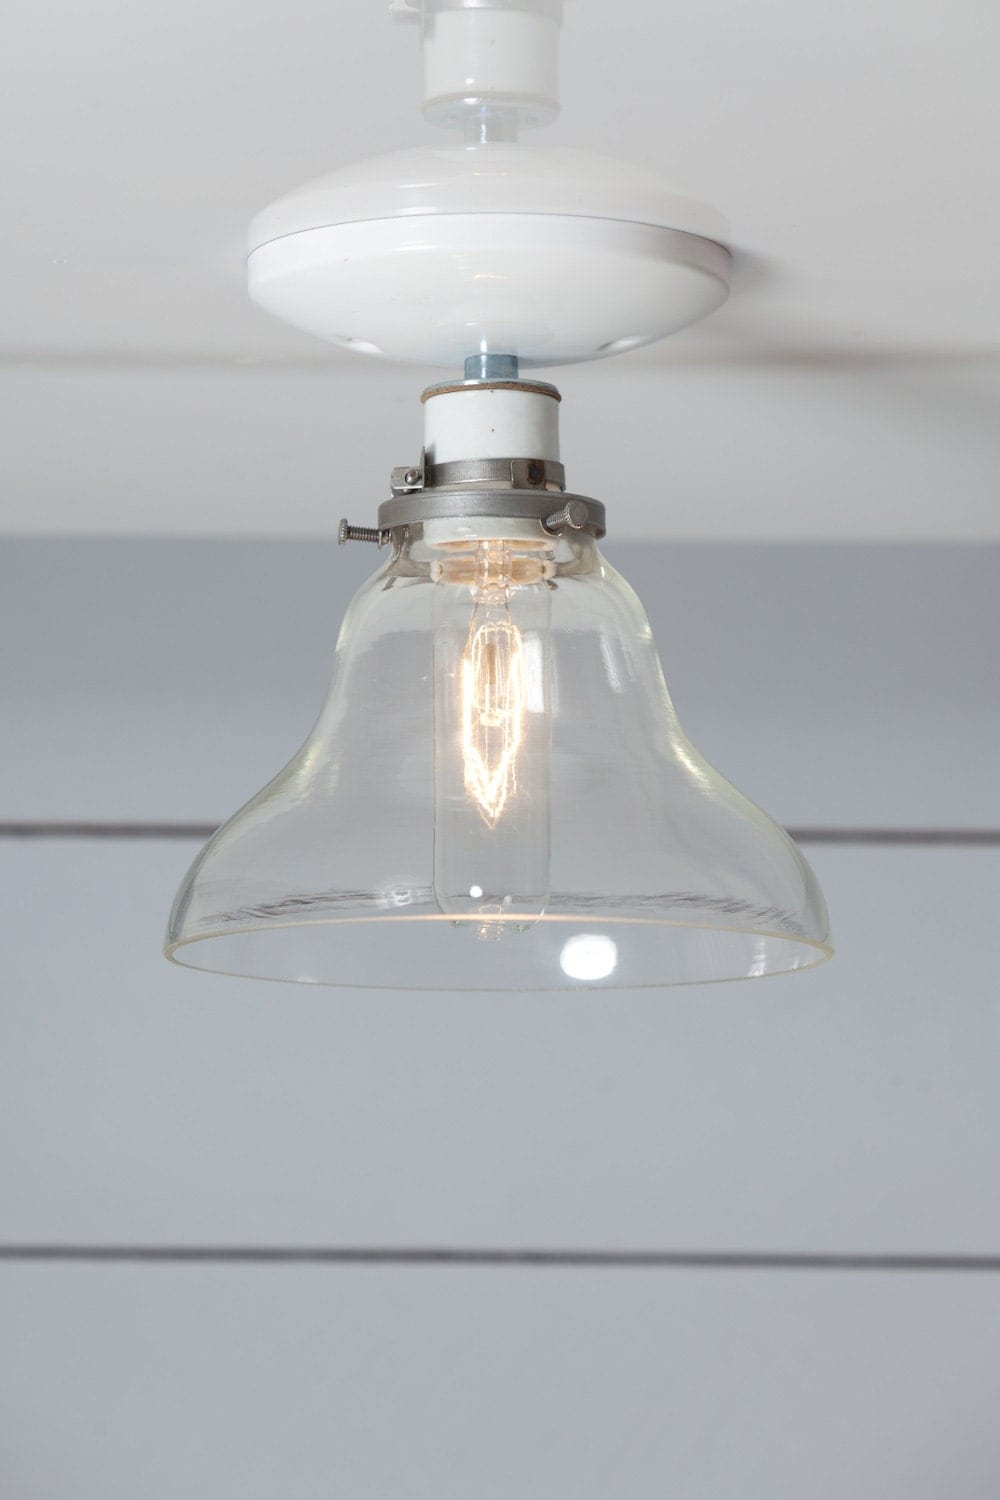 Ceiling Lights Glass Shades : Industrial ceiling mount light glass bell shade semi flush